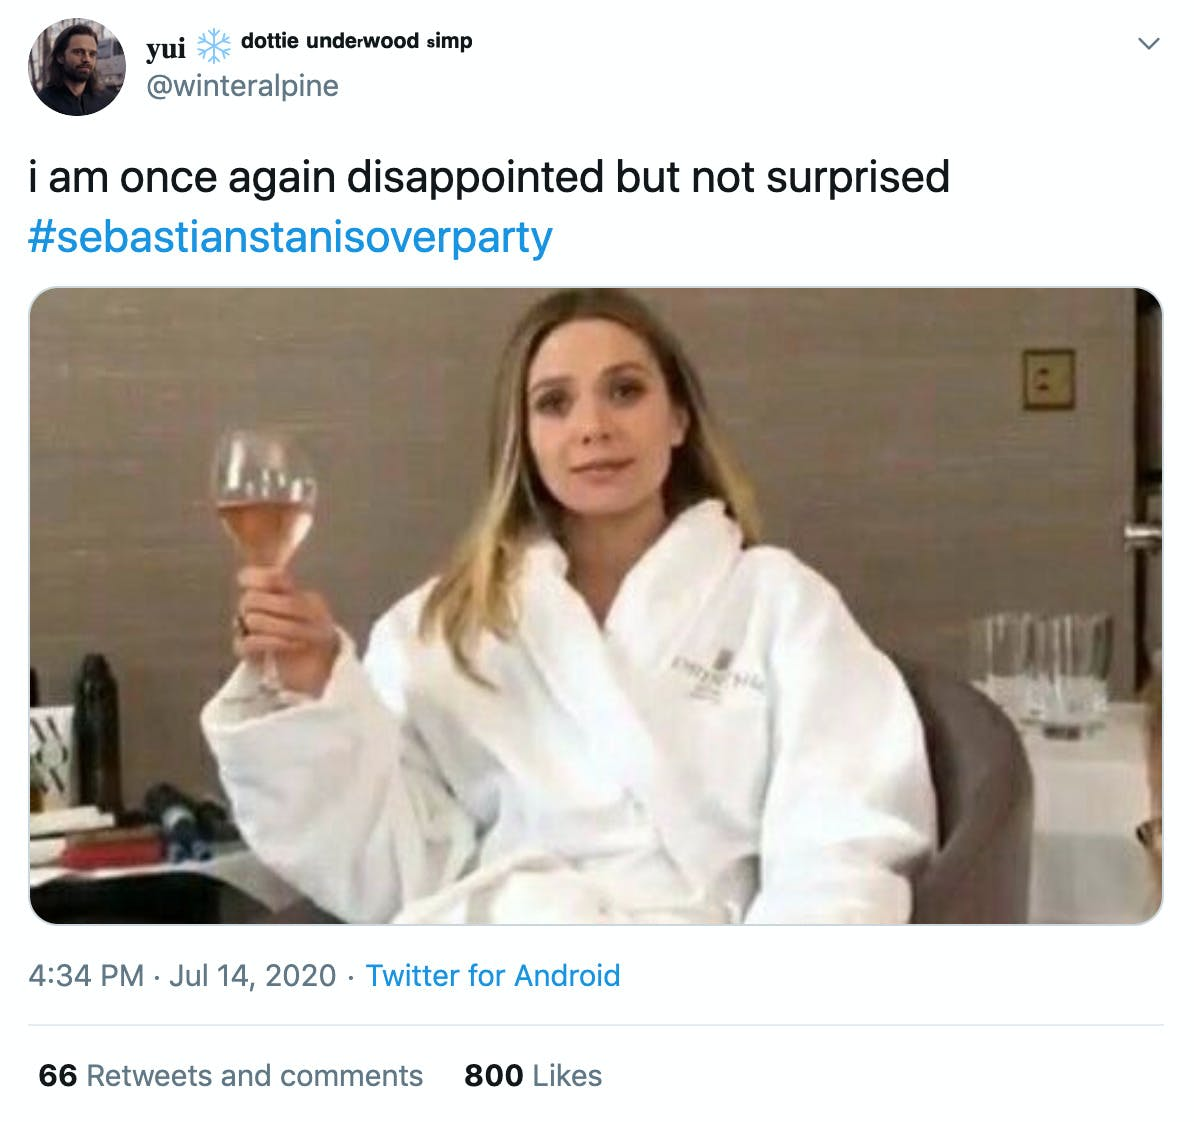 """""""I am once again disappointed but not surprised"""" gif of Elizabeth Olsen drinking wine in a bath robe"""